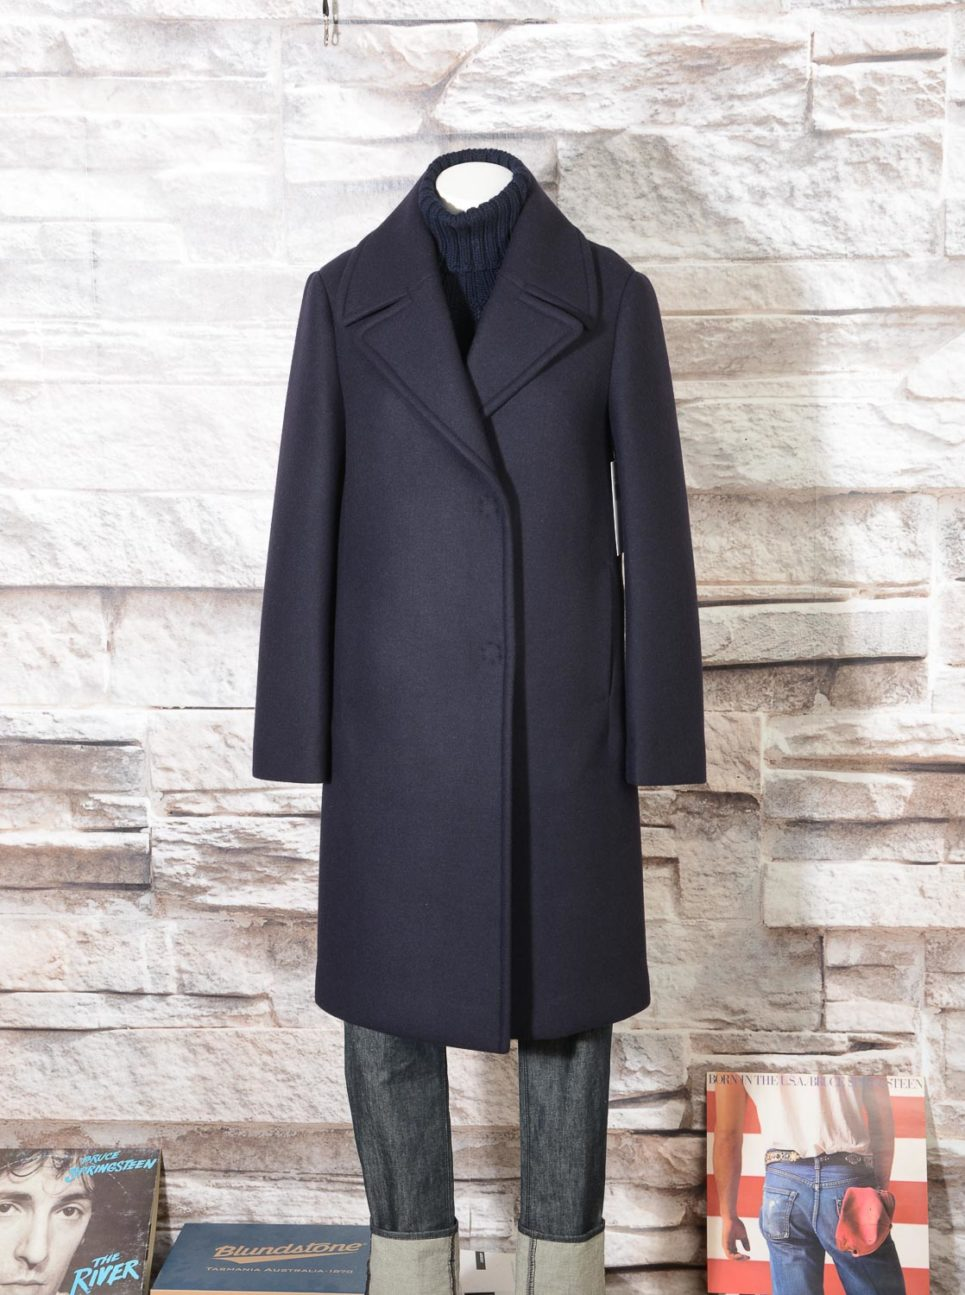 Cappotto Blu Navy in misto lana DKNY Donna Karan New York N365005A4B 414 -11